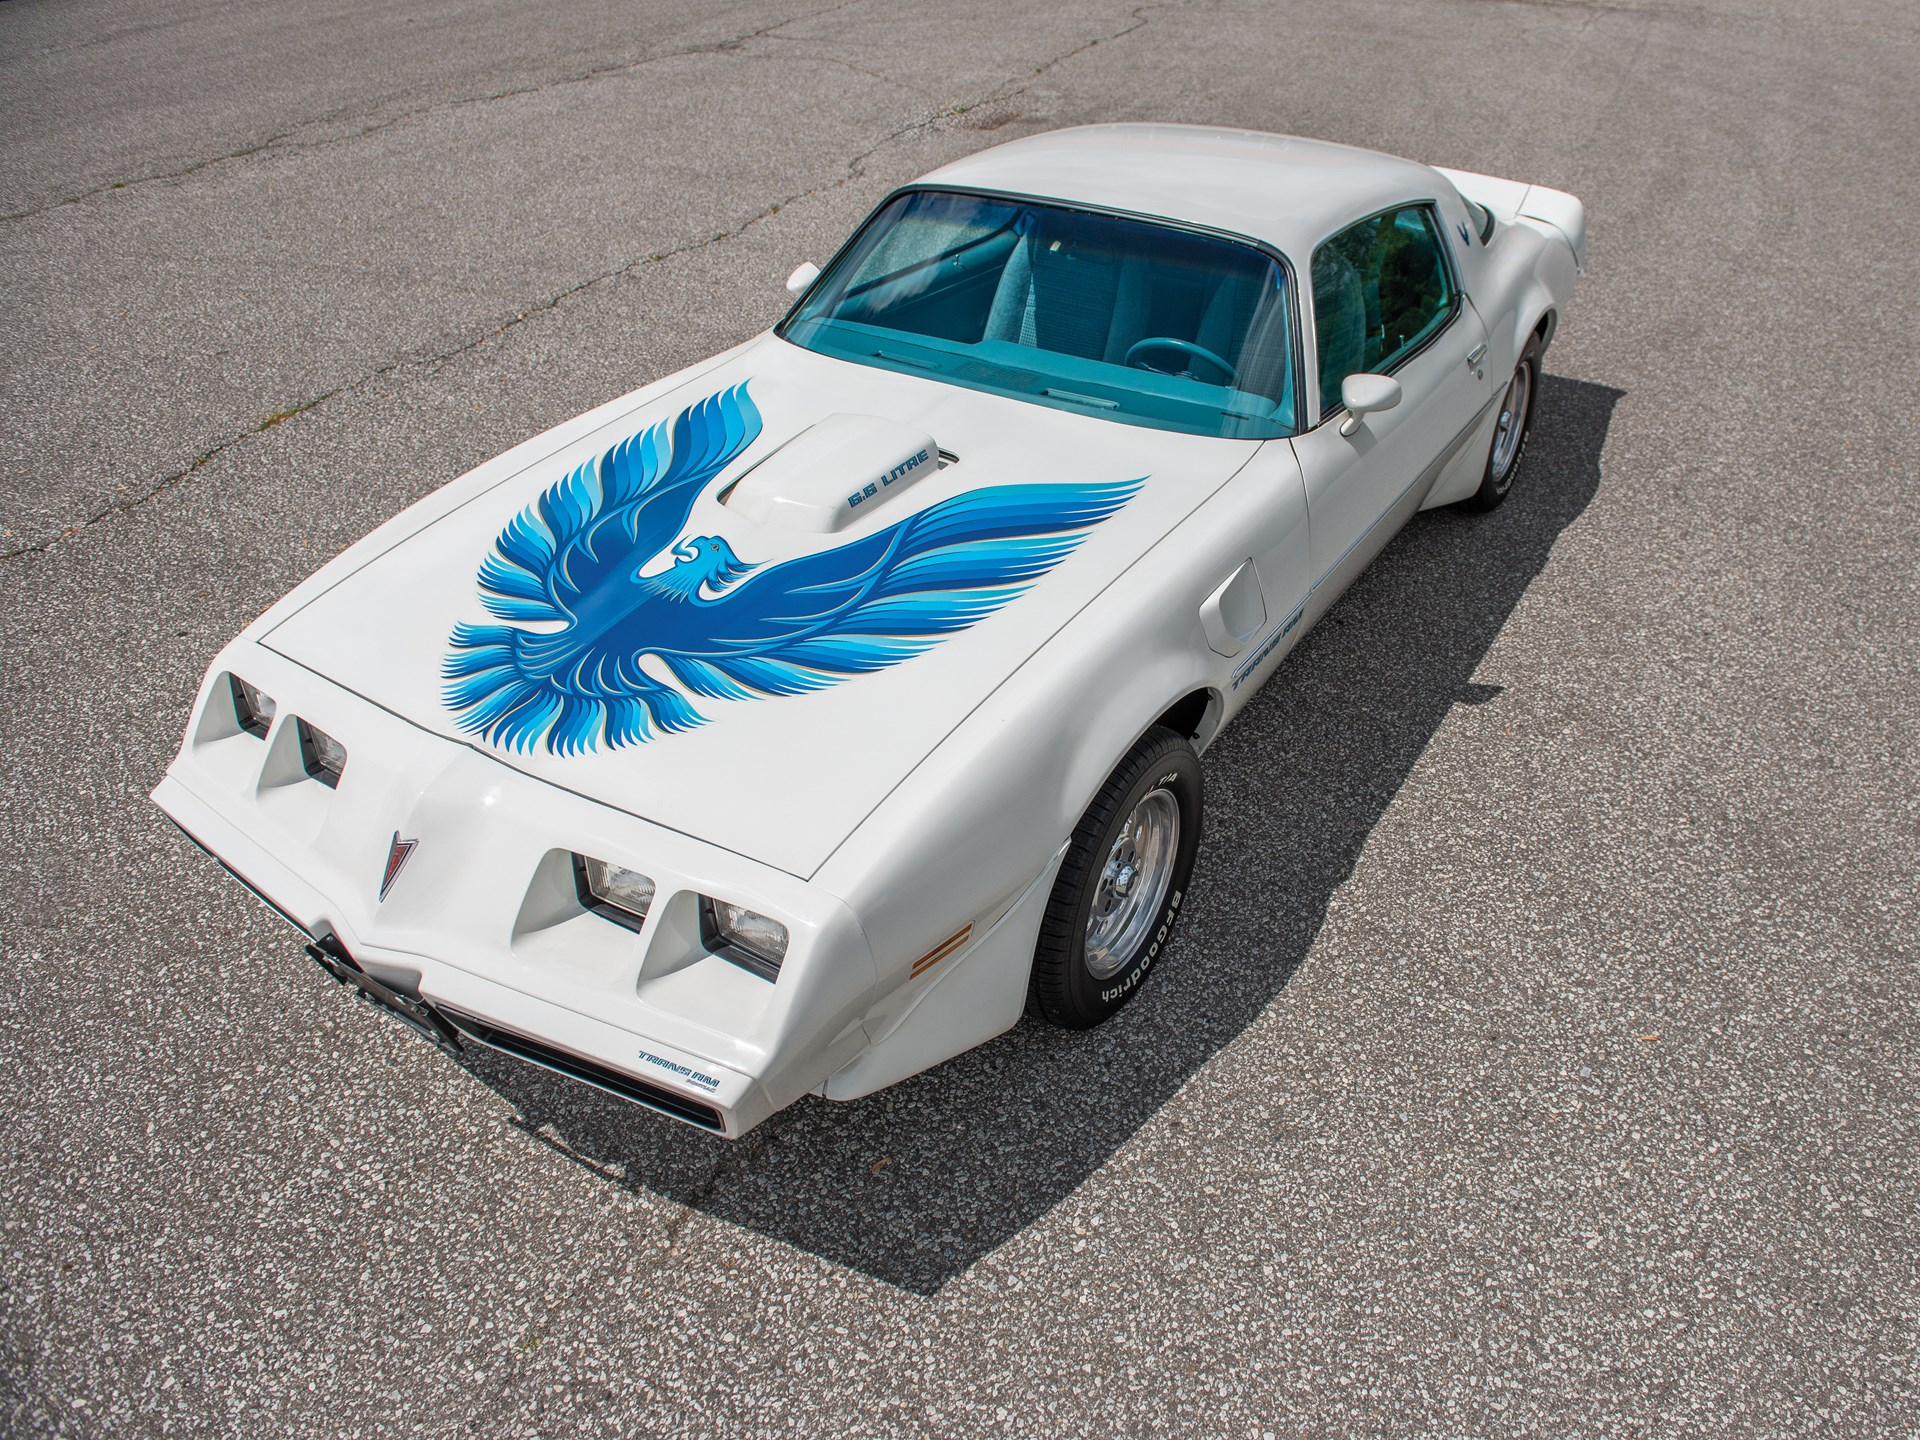 1979 Trans Am Picture Rm Sotheby S 1979 Pontiac Trans Am Coupe Auburn Fall 2018